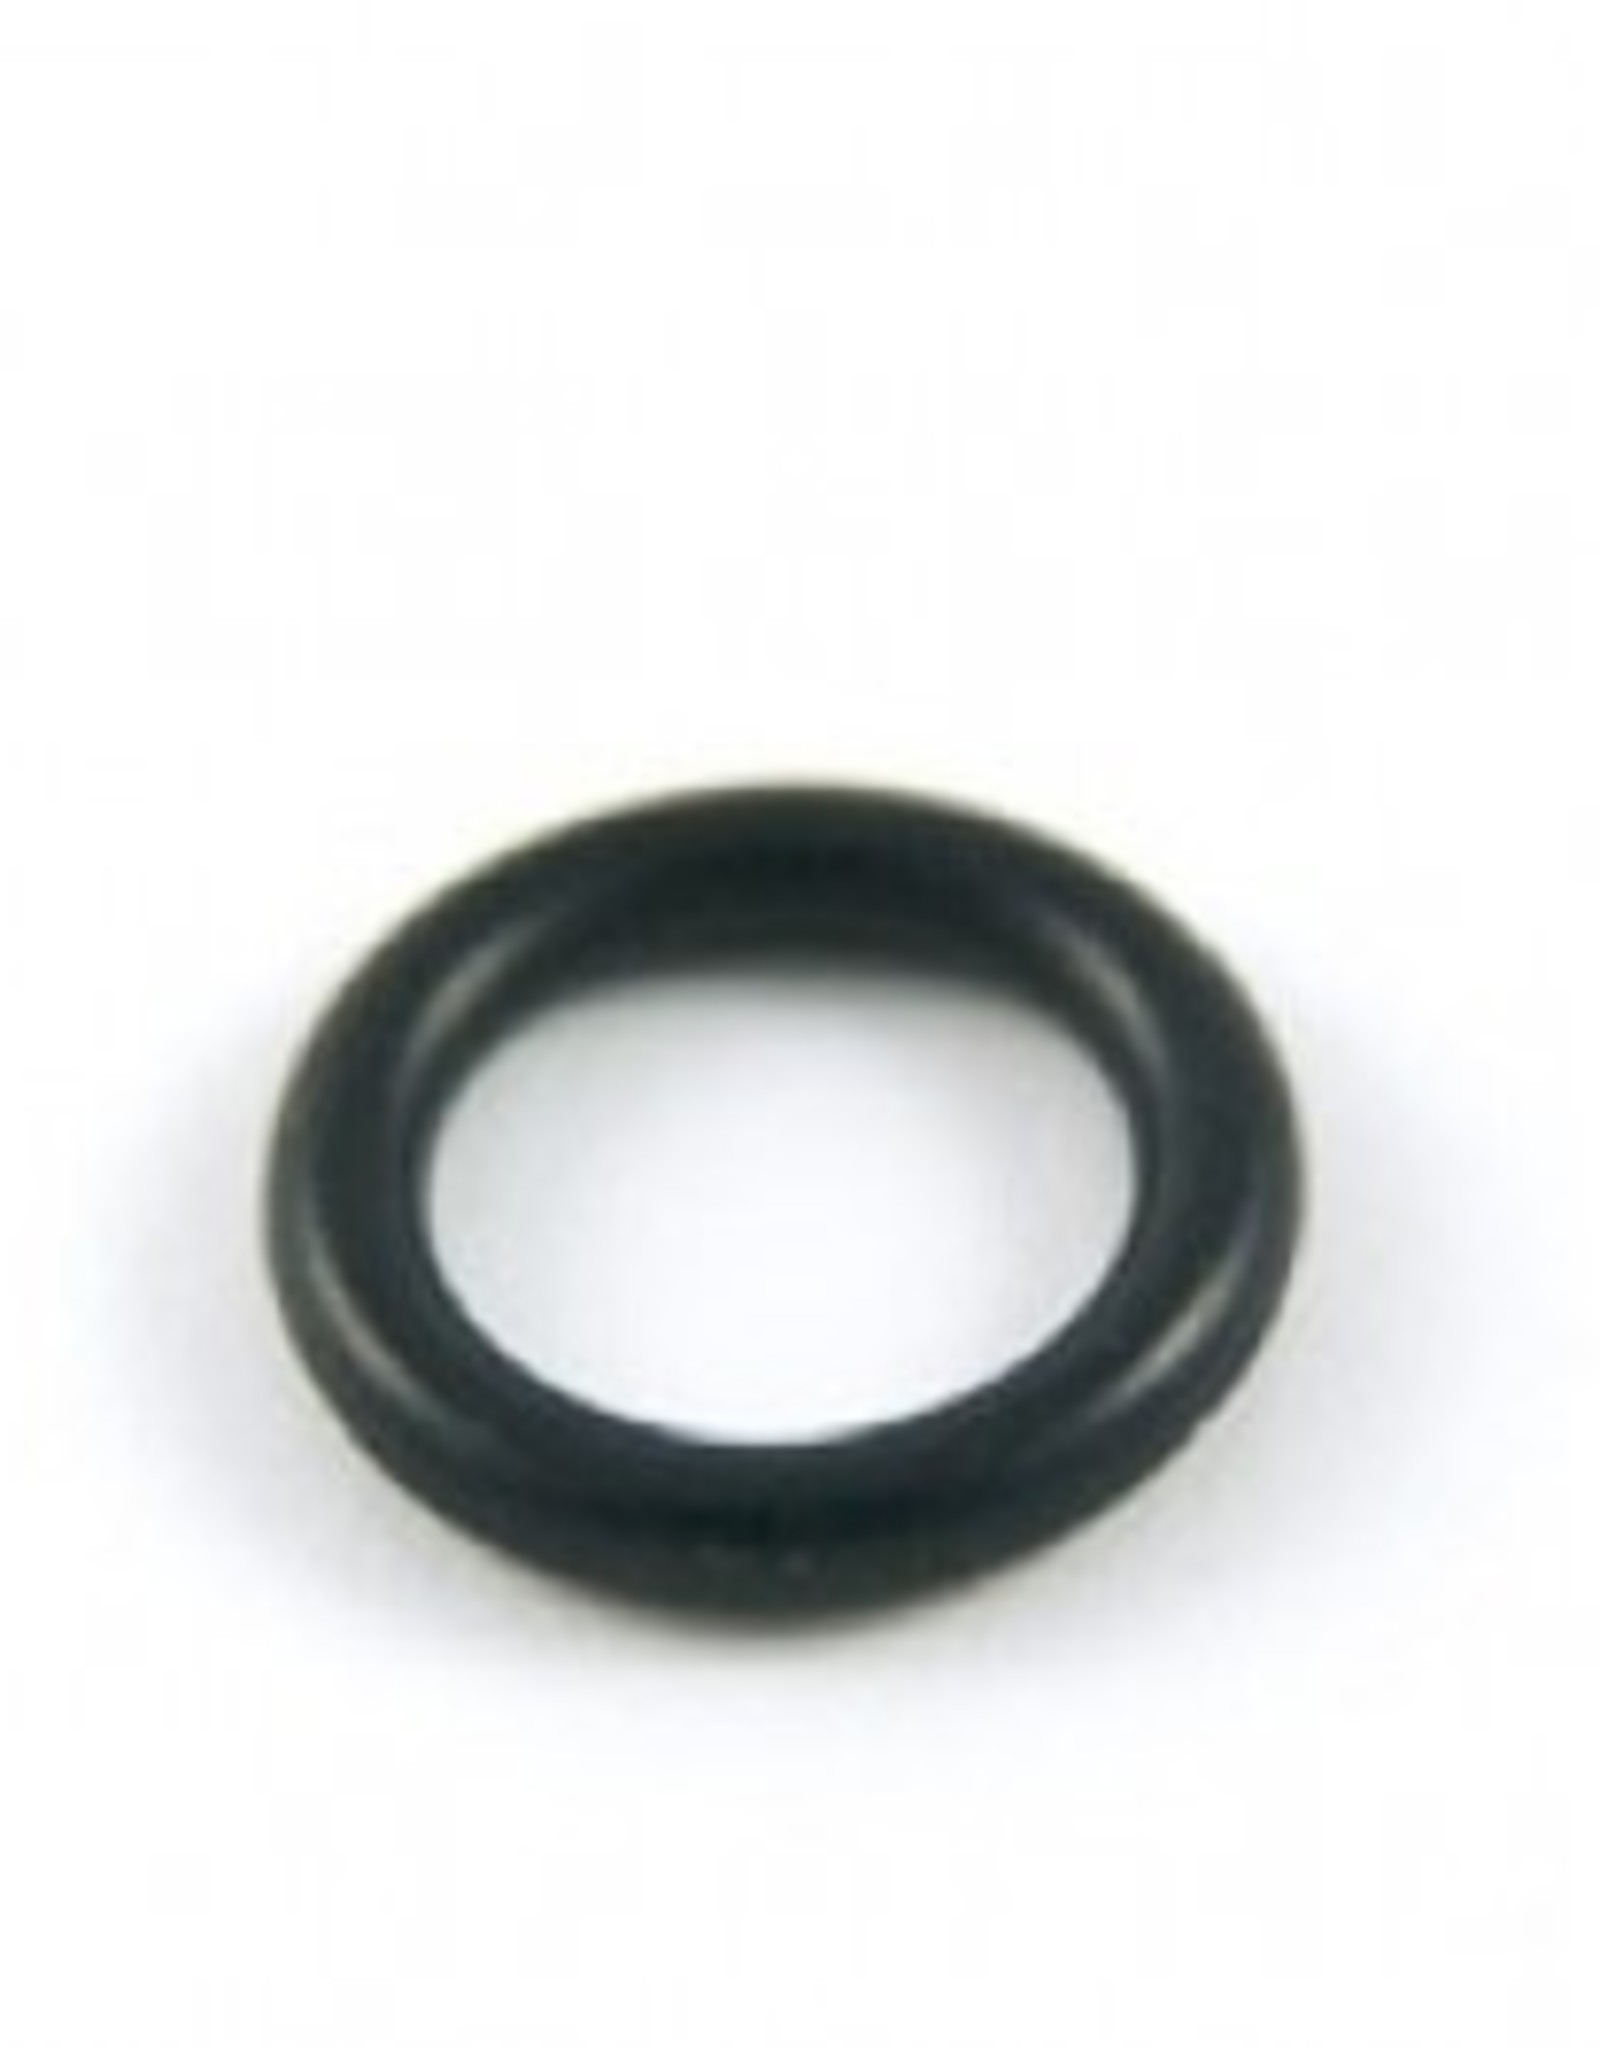 CROSBY & BAKER Ball Lock Tank Plug O-Ring